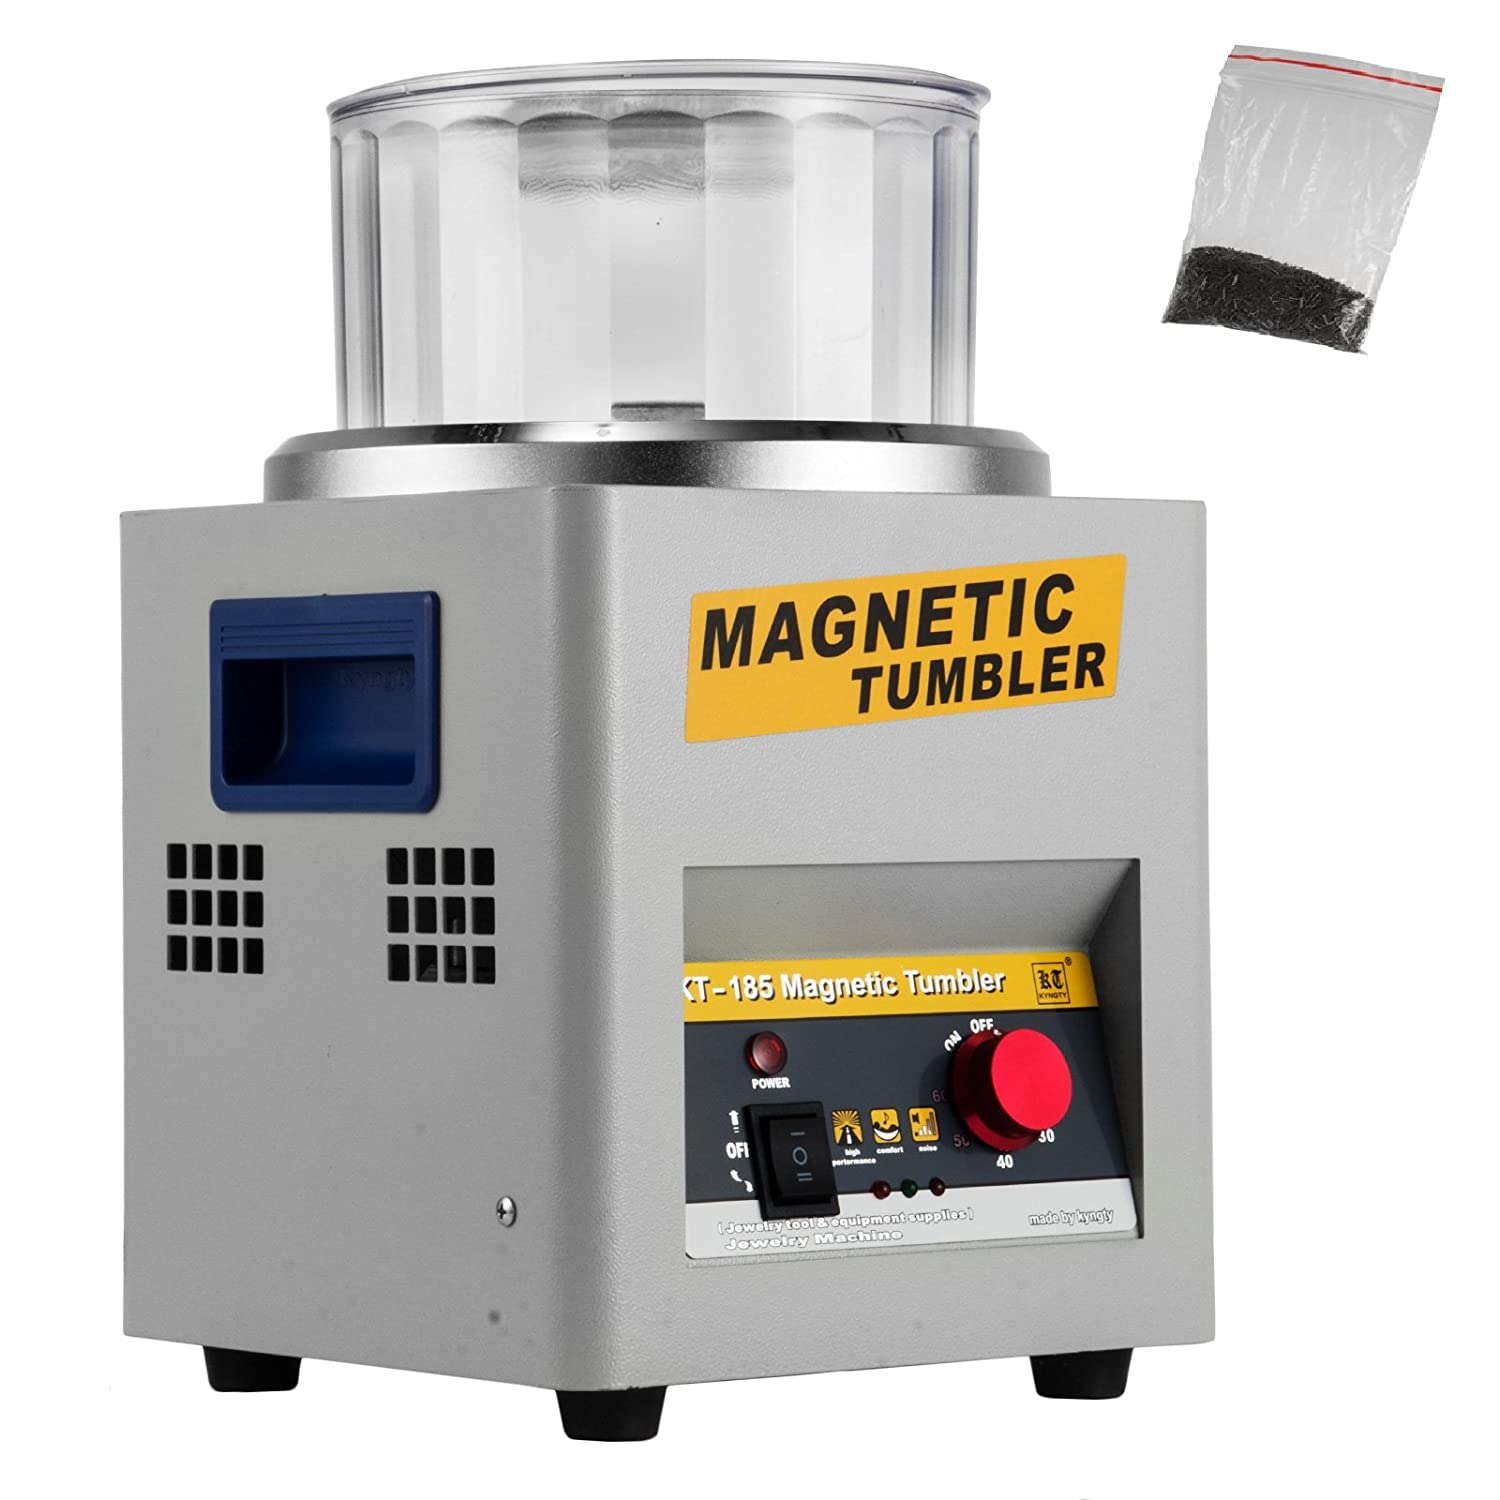 Superland KT185 Magnetic Tumbler 2000 RPM Jewelry Polisher Finisher 7.3 inch Magnetic Polisher with Adjustable Speed for Jewelry (KT185)